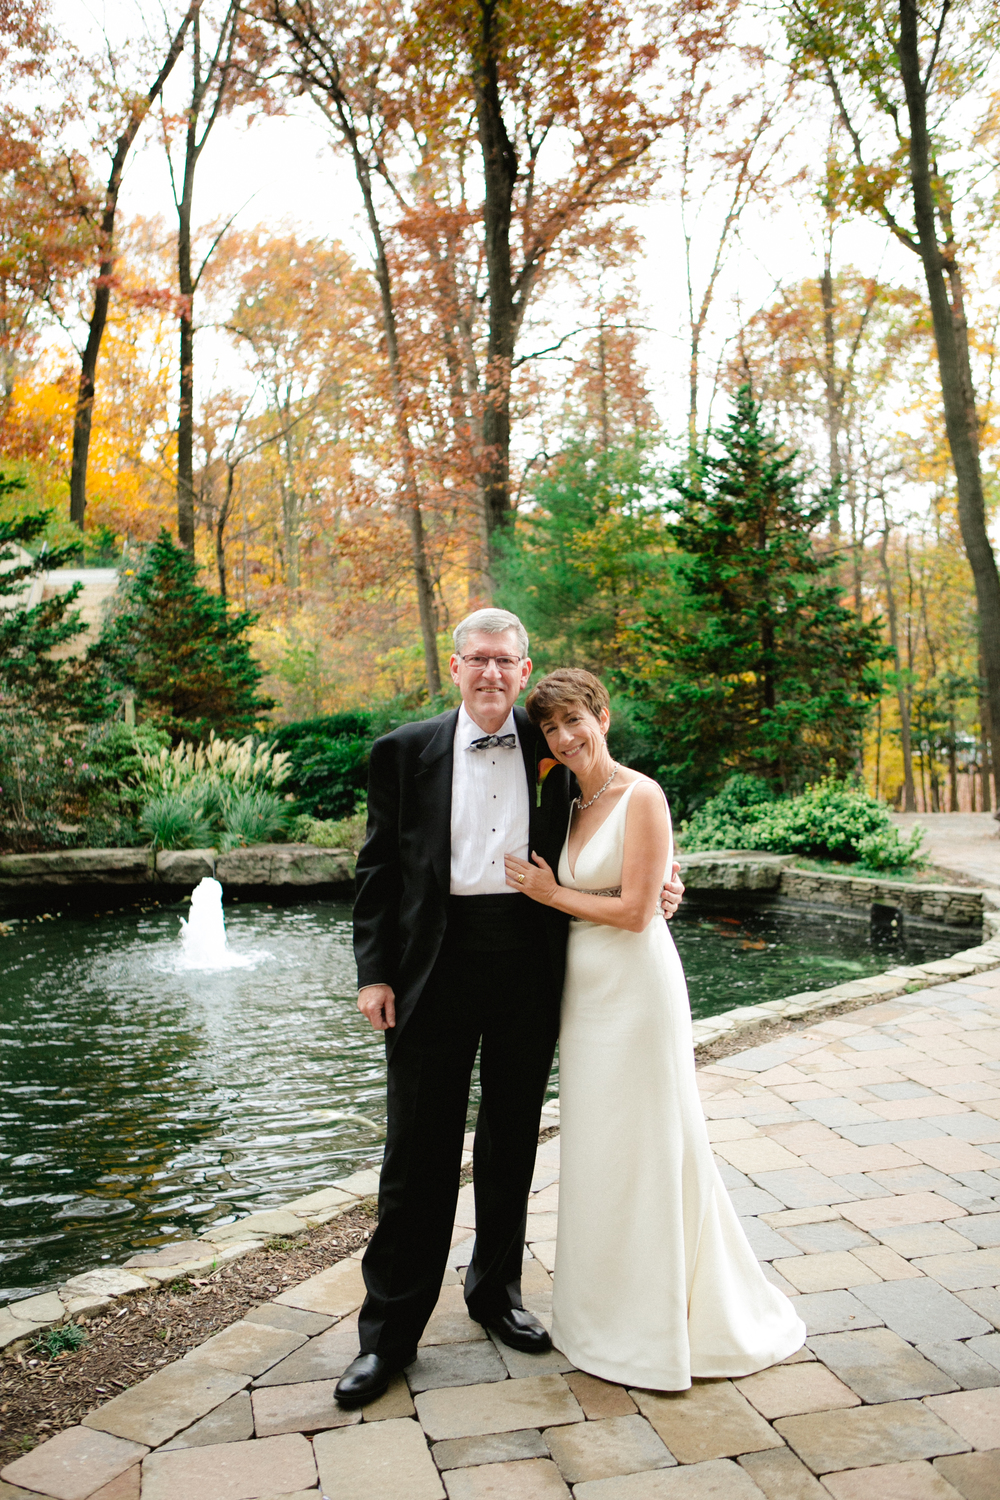 Vness_Photography_S&D_Wed-399.JPG